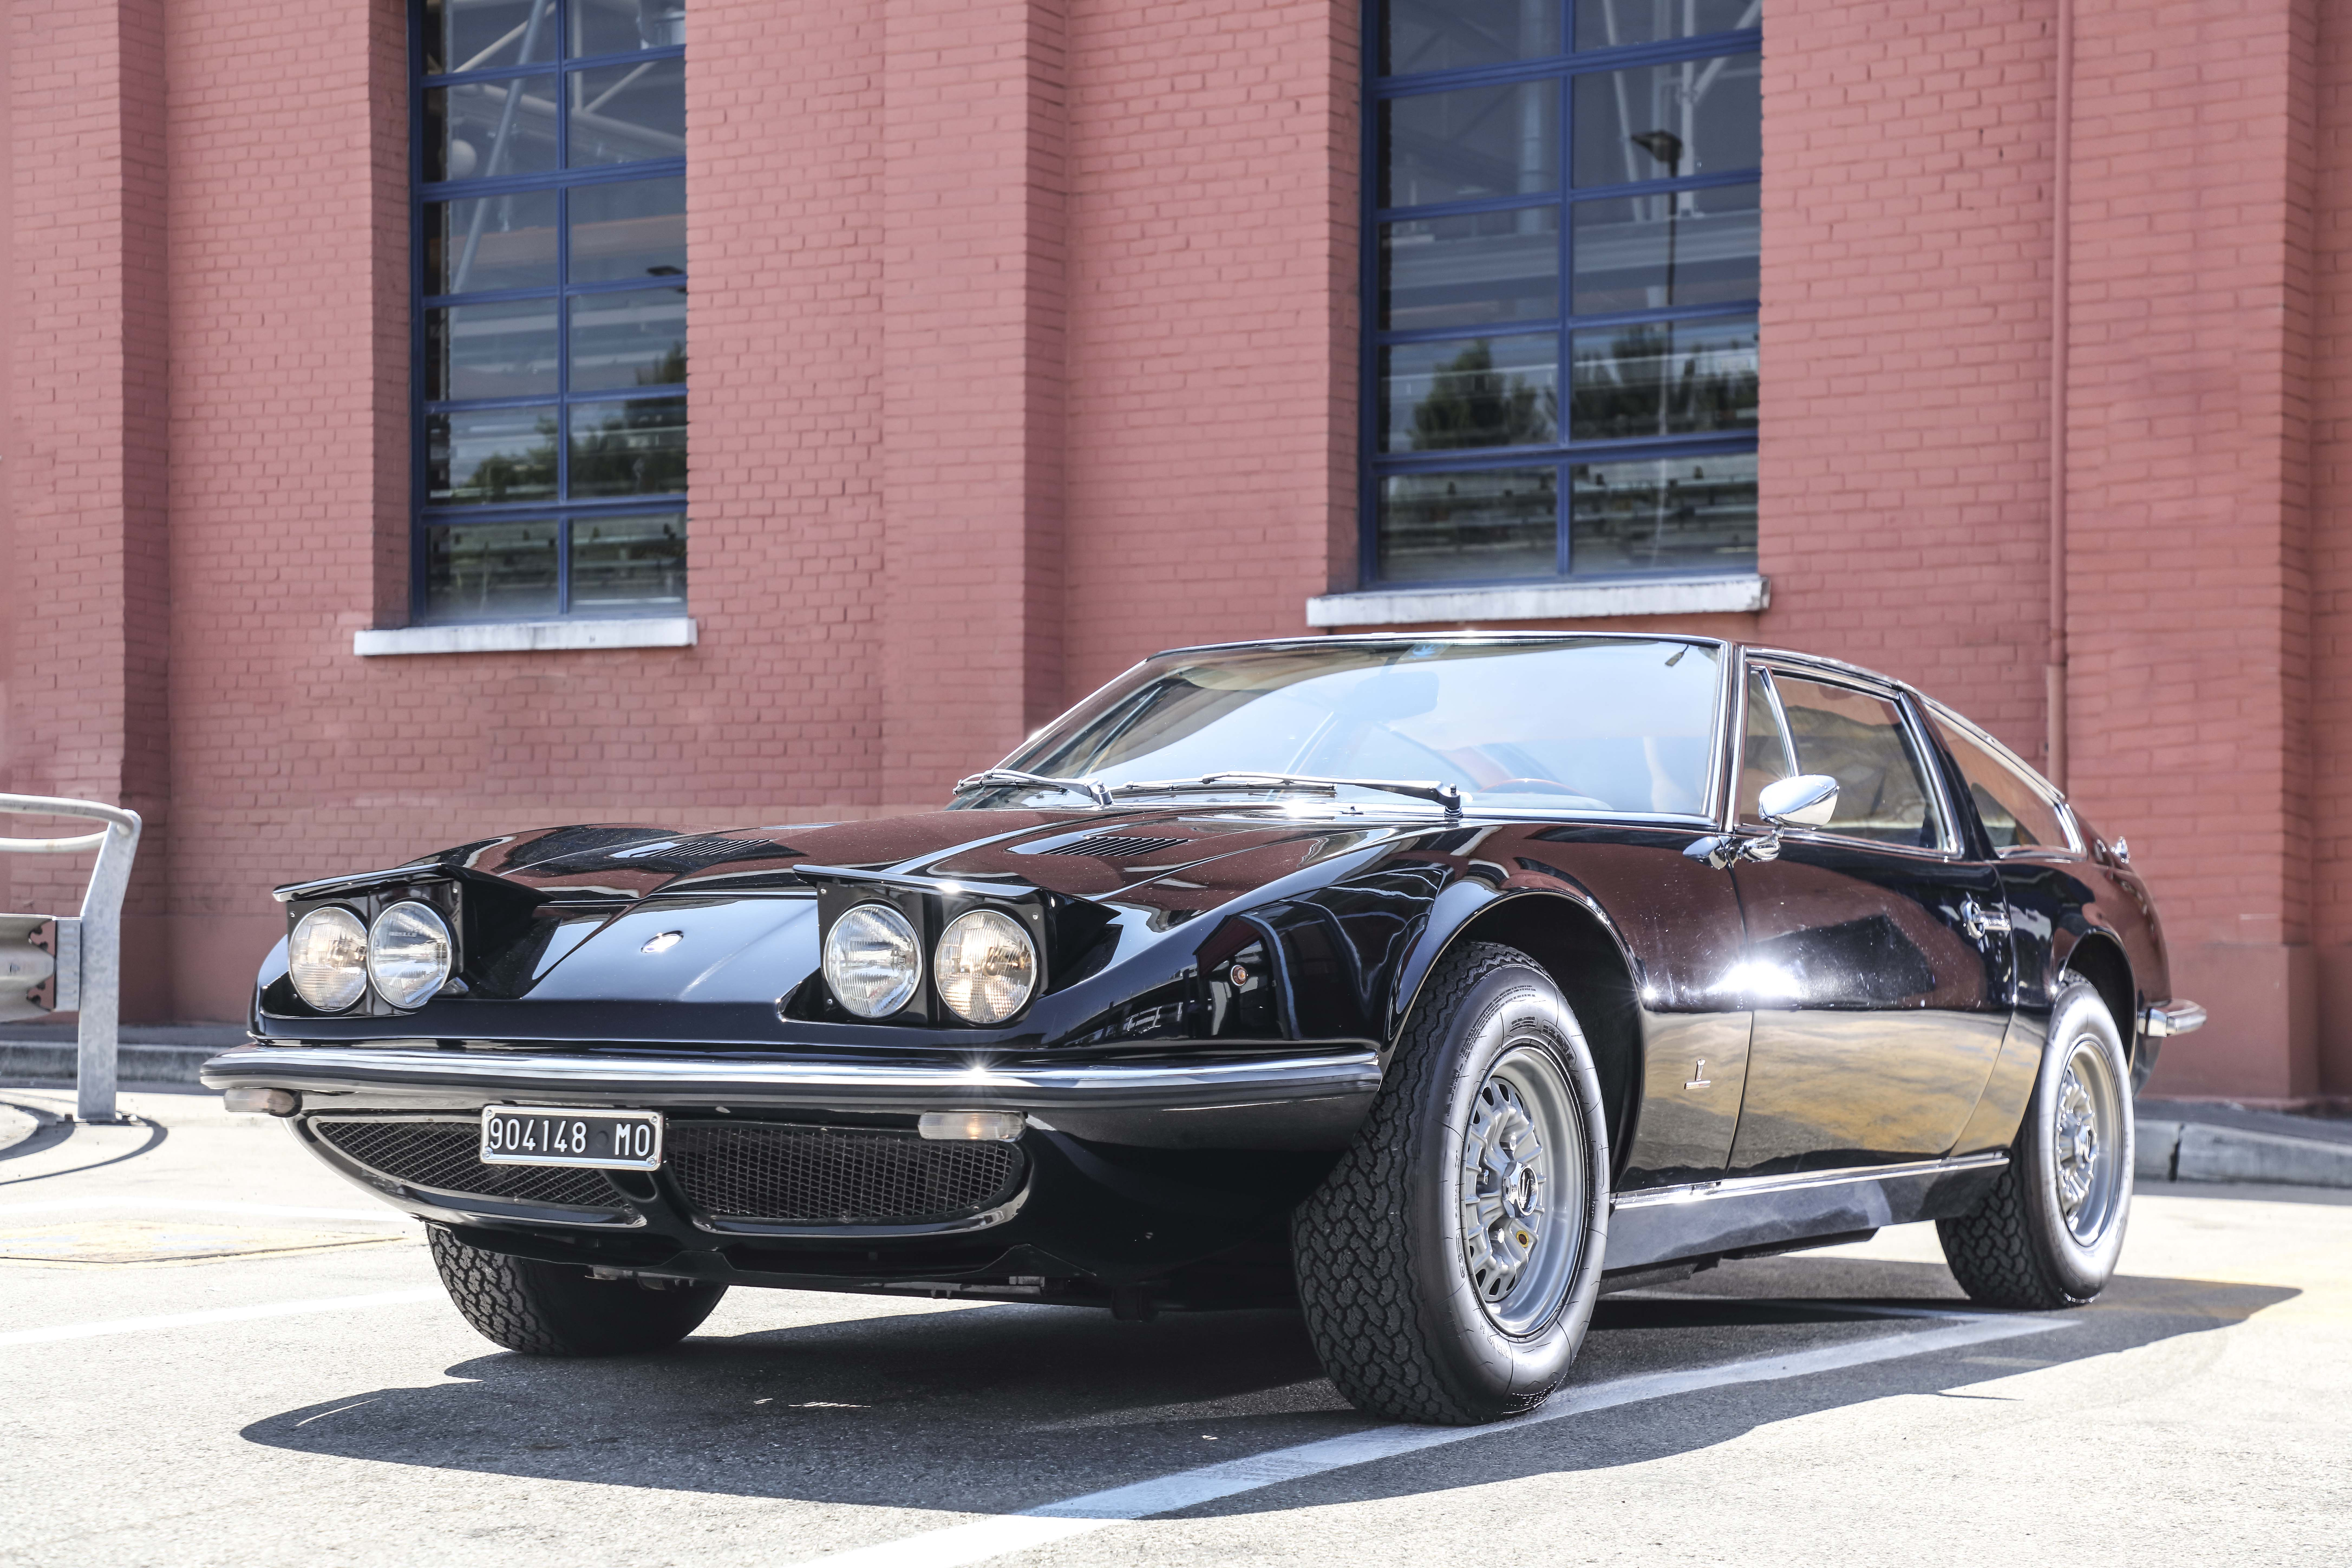 Maserati celebrates the 50th anniversary of the first Indy coupé delivery